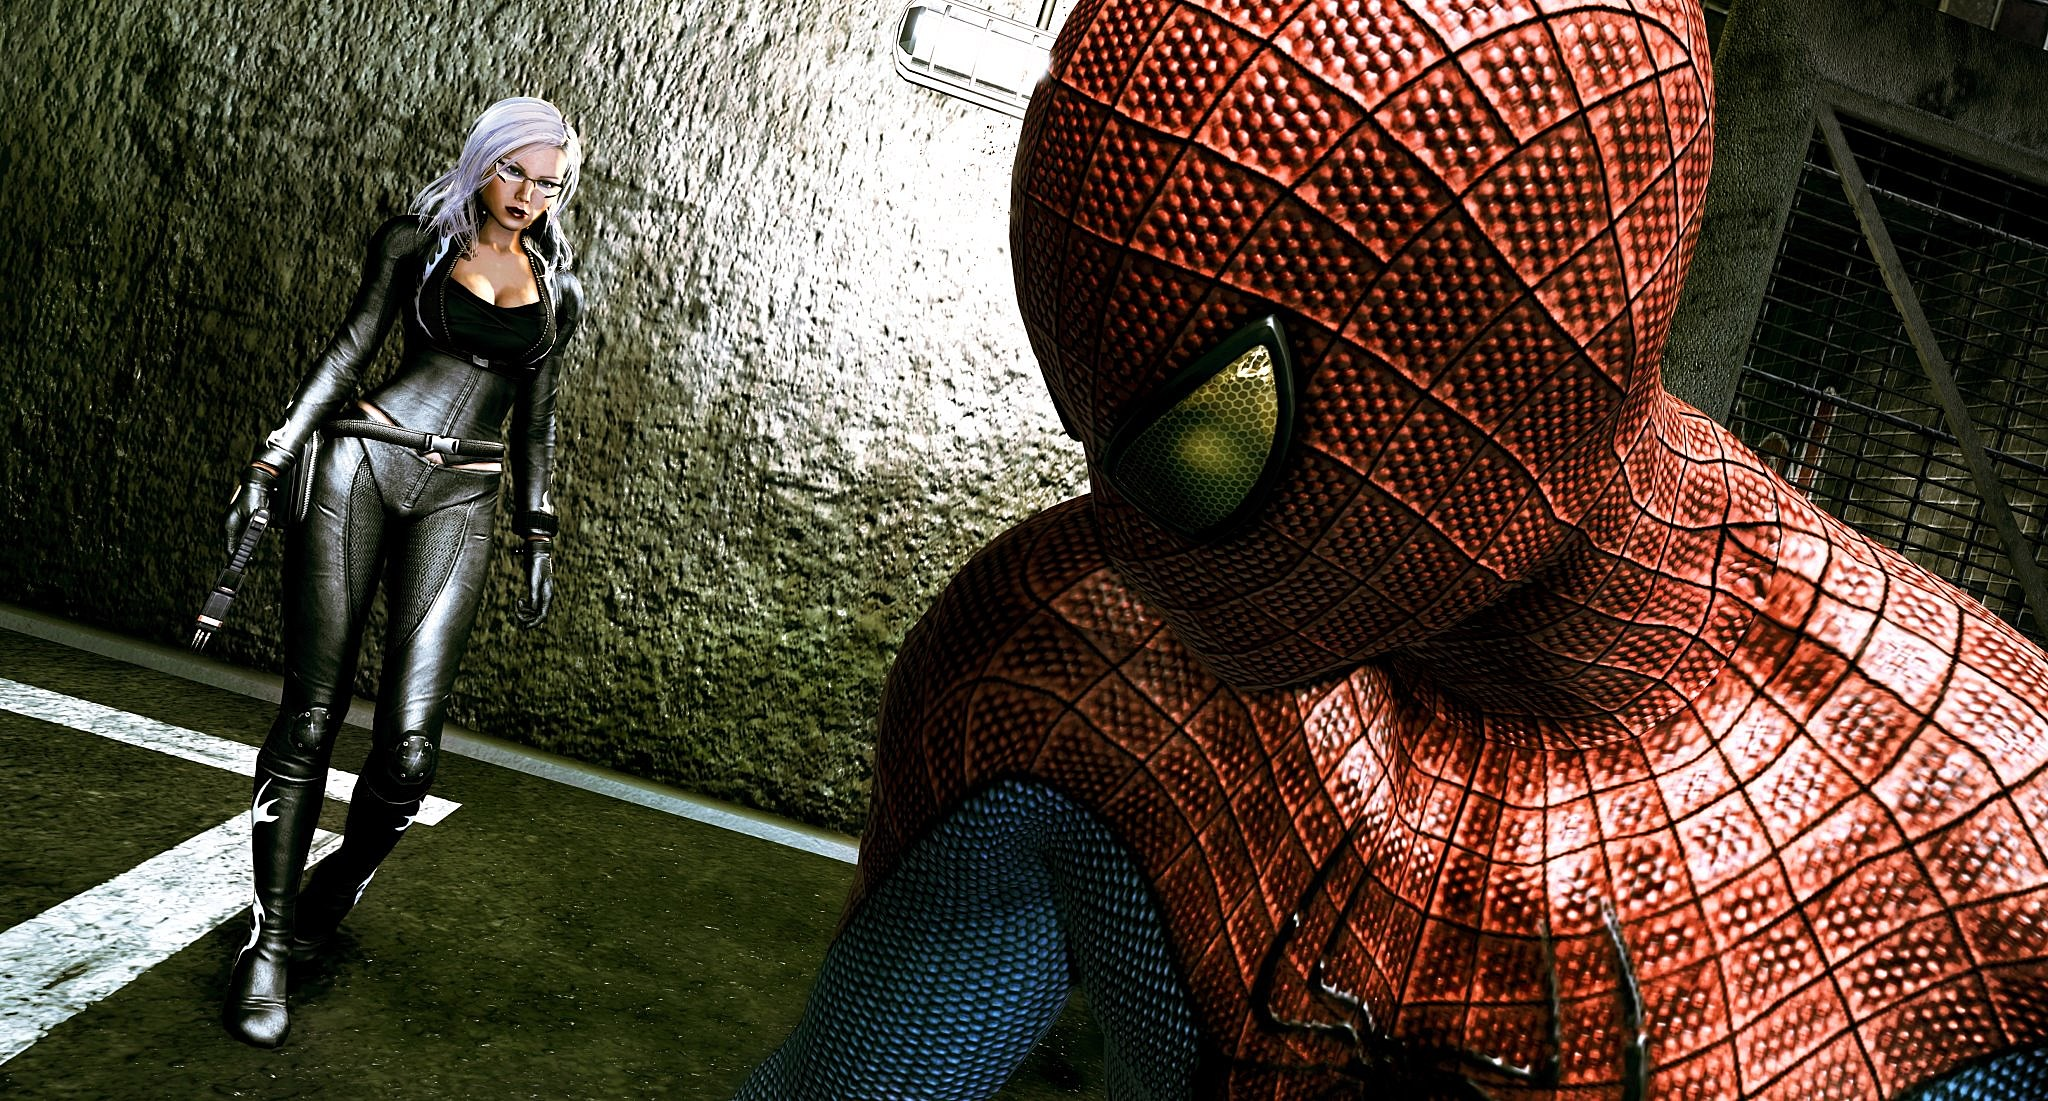 Spiderman Games The Black Cats The Amazing Spider Man Game Look Revealed